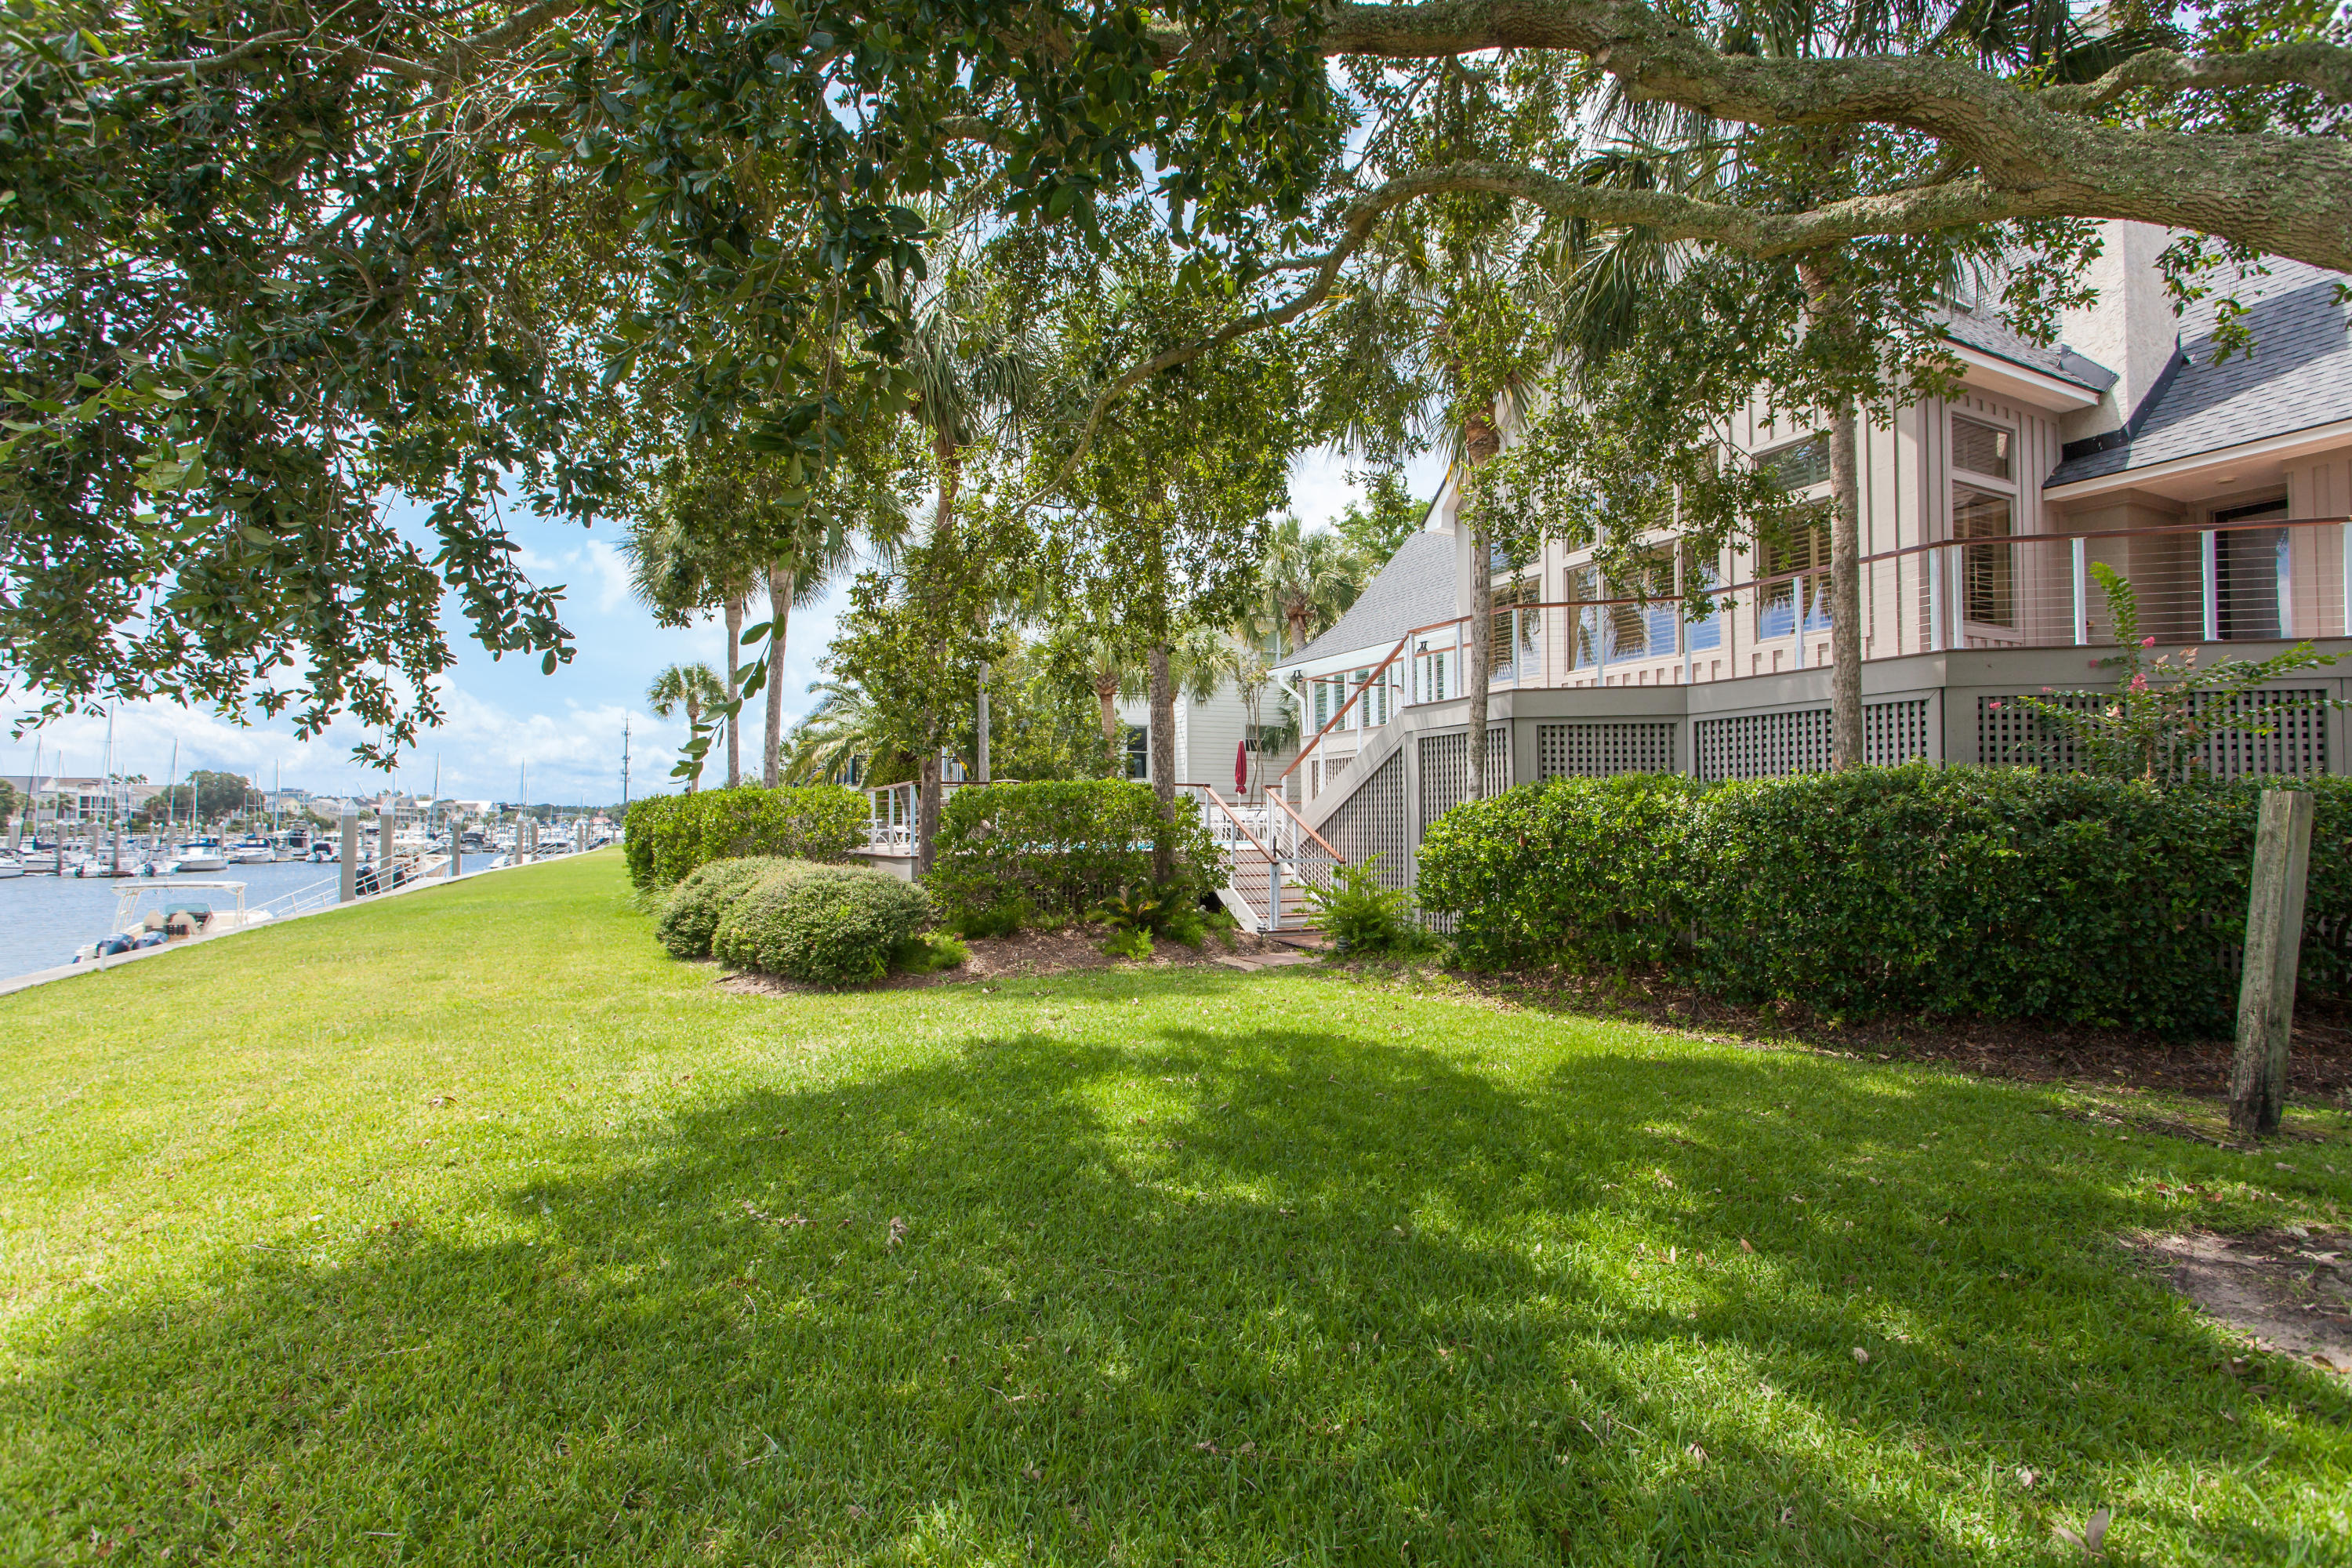 Wild Dunes Homes For Sale - 47 Waterway Island, Isle of Palms, SC - 4